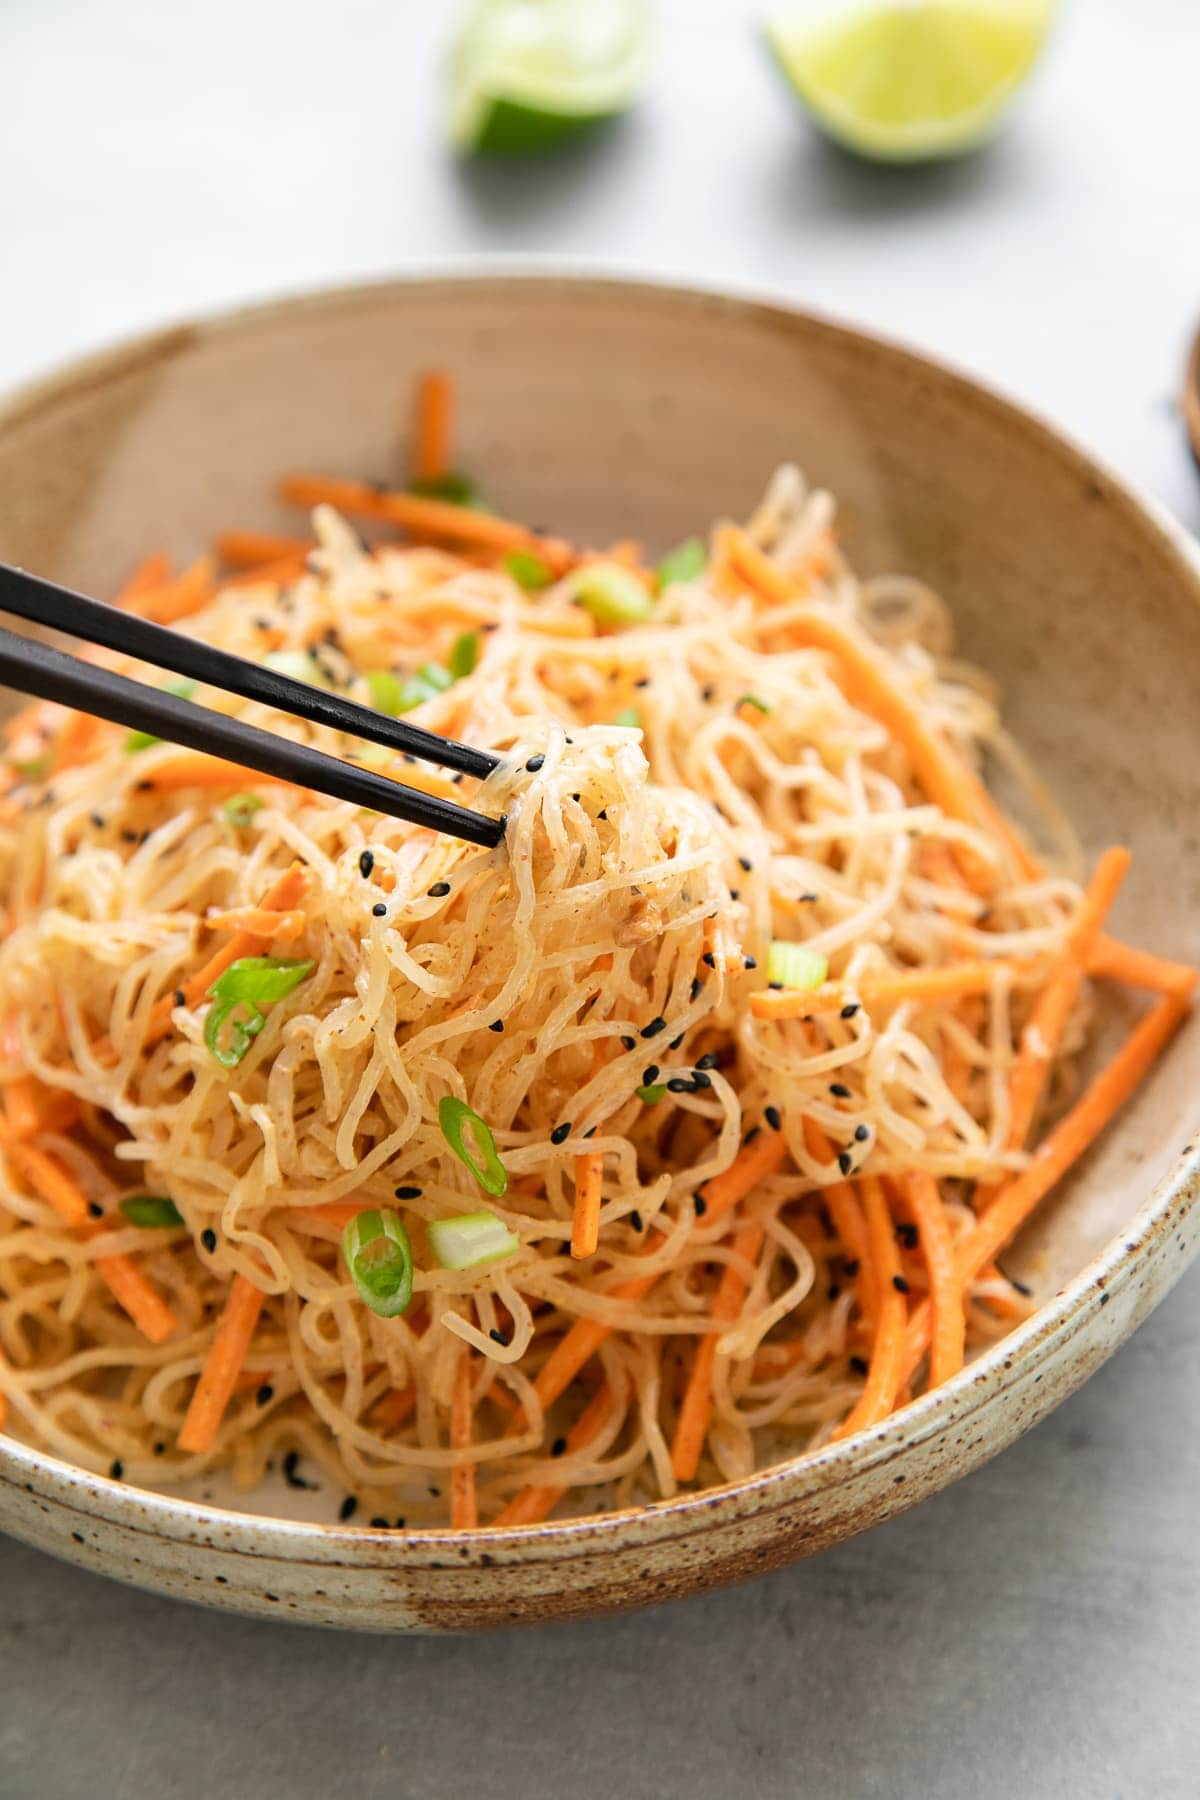 side angle view of serving of kelp noodle salad in bowl with chopsticks holding noodles.